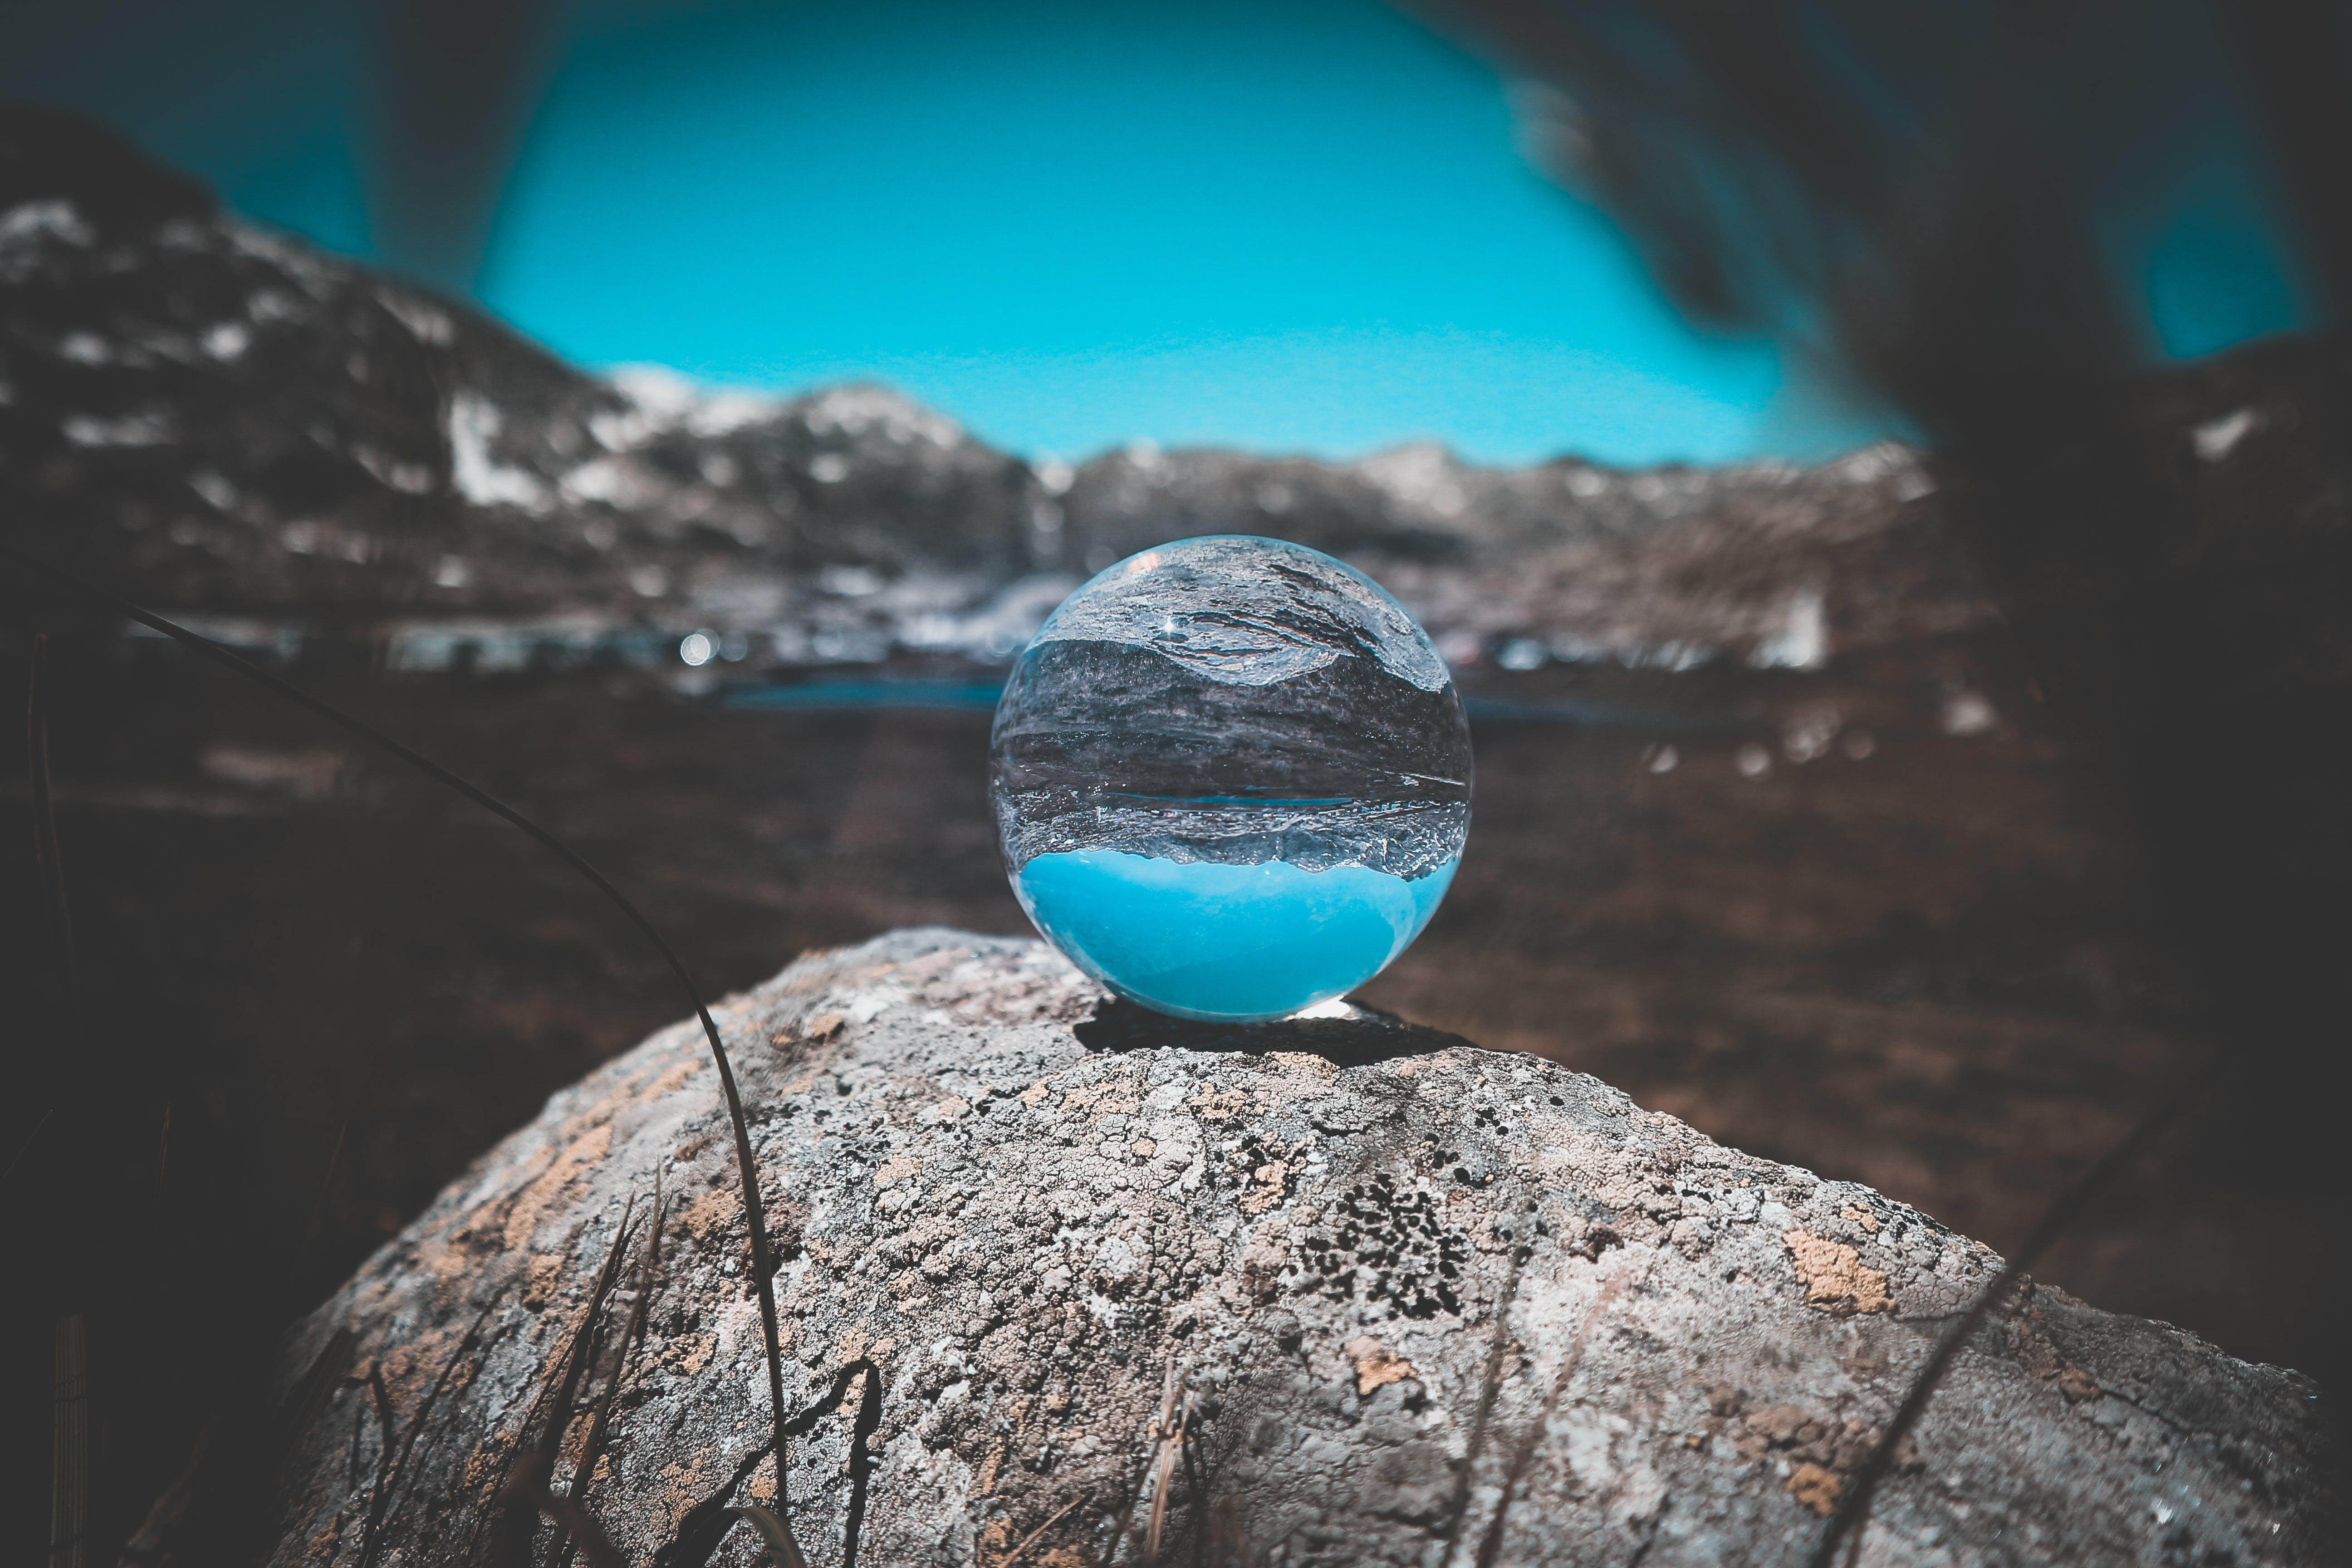 Crystal Ball on Top of Rock